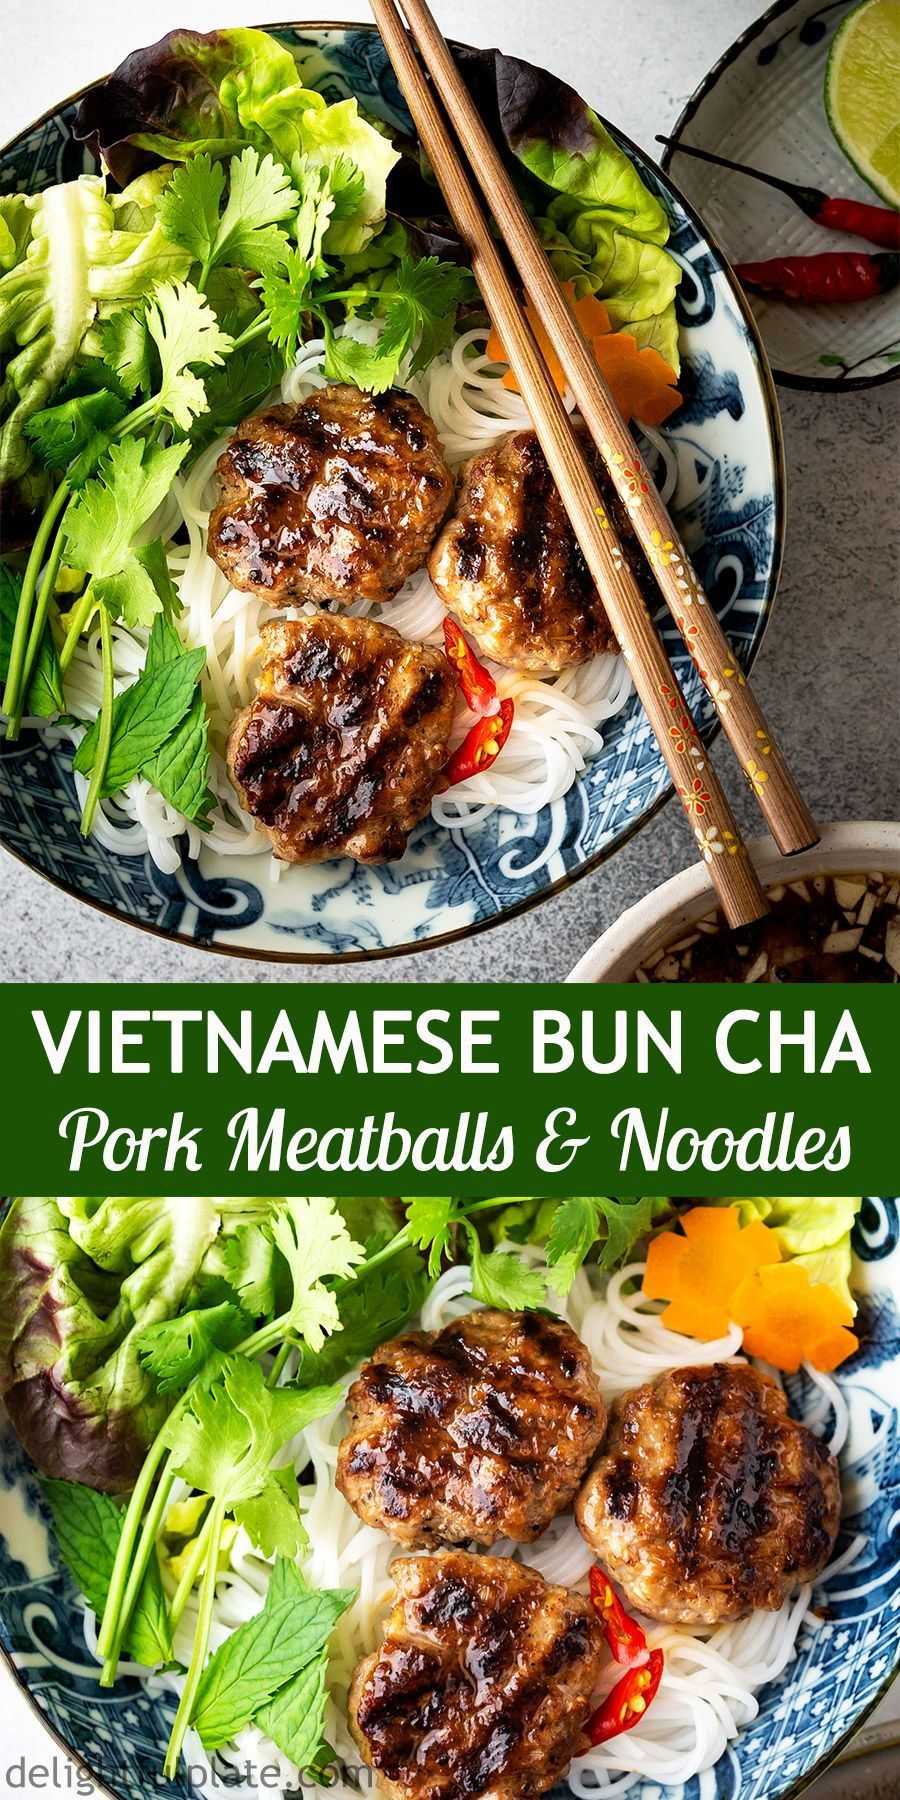 Authentic Bun Cha recipe (Vietnamese Grilled Pork Meatballs with Vermicelli Noodles). Bun Cha features flavorful and juicy pork meatballs, vermicelli noodles, lettuce, refreshing herbs and traditional lime fish sauce dipping.     vietnamesegrilledpork #vietnamesecuisine #vietnamesenoodle #vietnameserecipes #vermicellinoodles #asiannoodles #charecipe #asiannoodlerecipes #asianrecipes